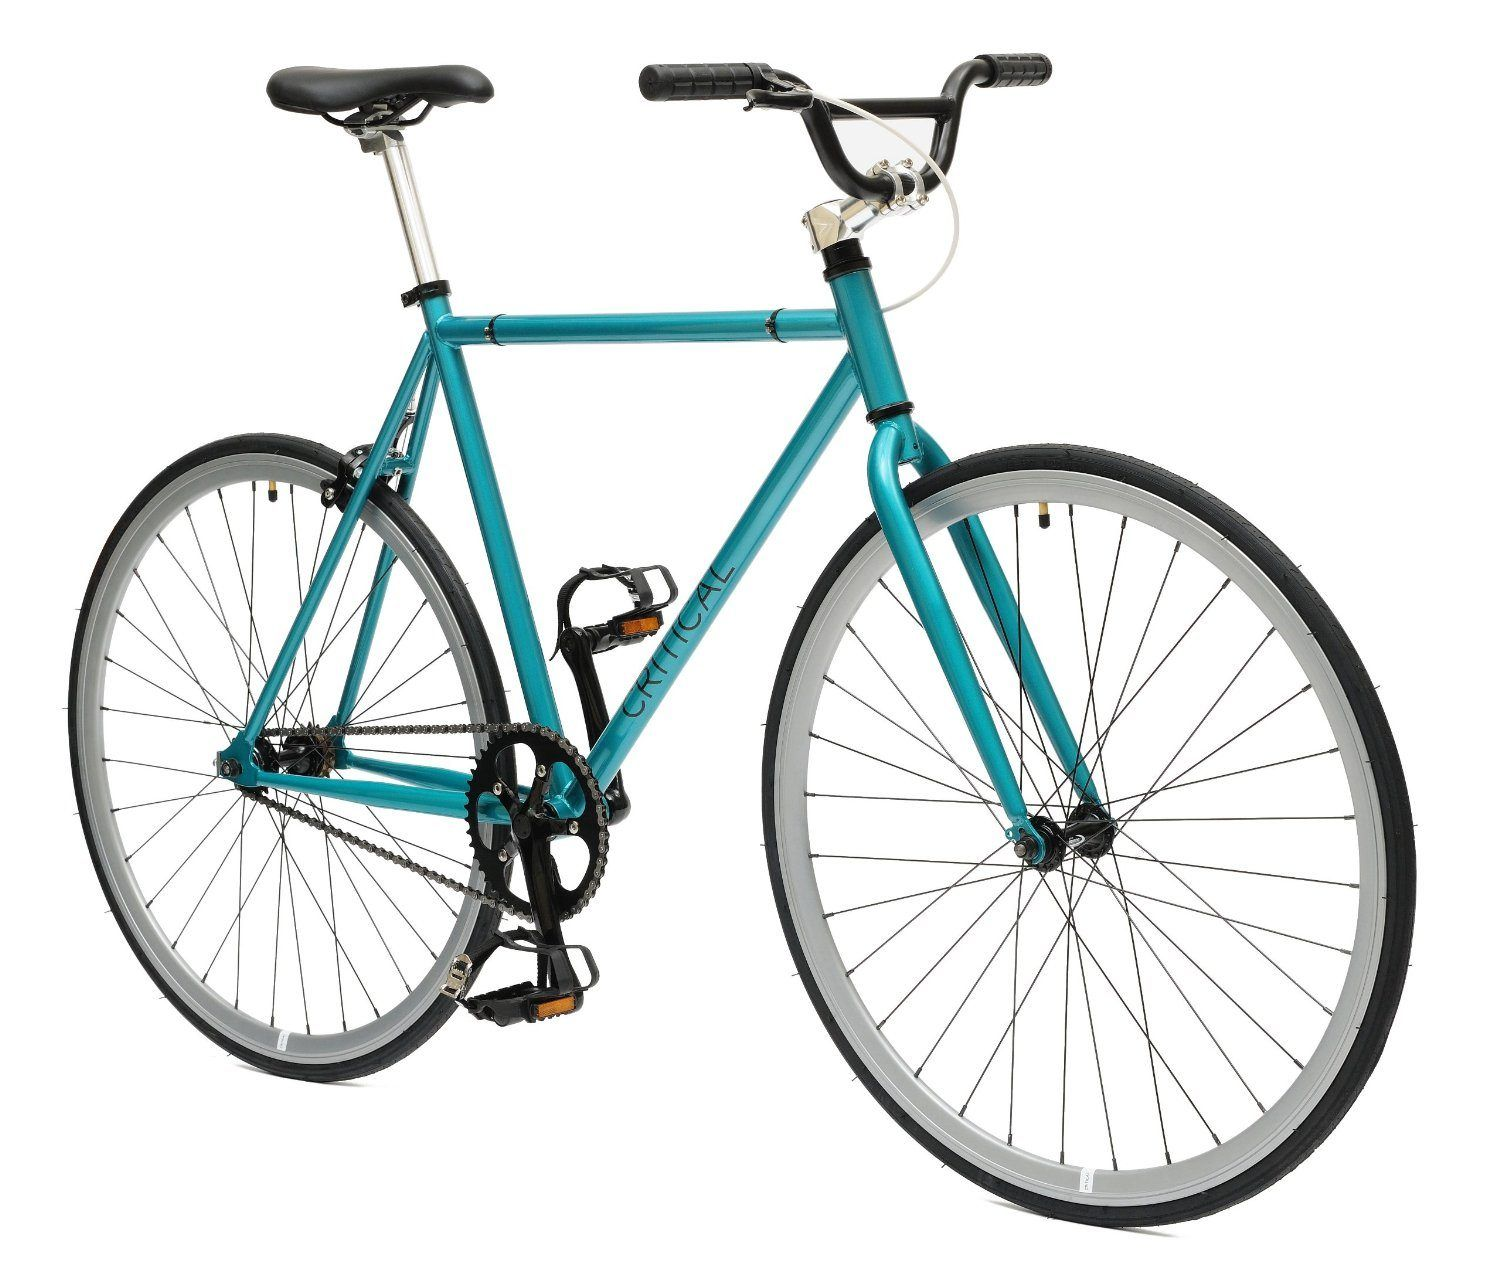 10 Best Single Speed Bikes Fixed Gear Bikes Road Bike Adventure Your Buying Guide And Review Source Road Bike Fixie Bike Seat